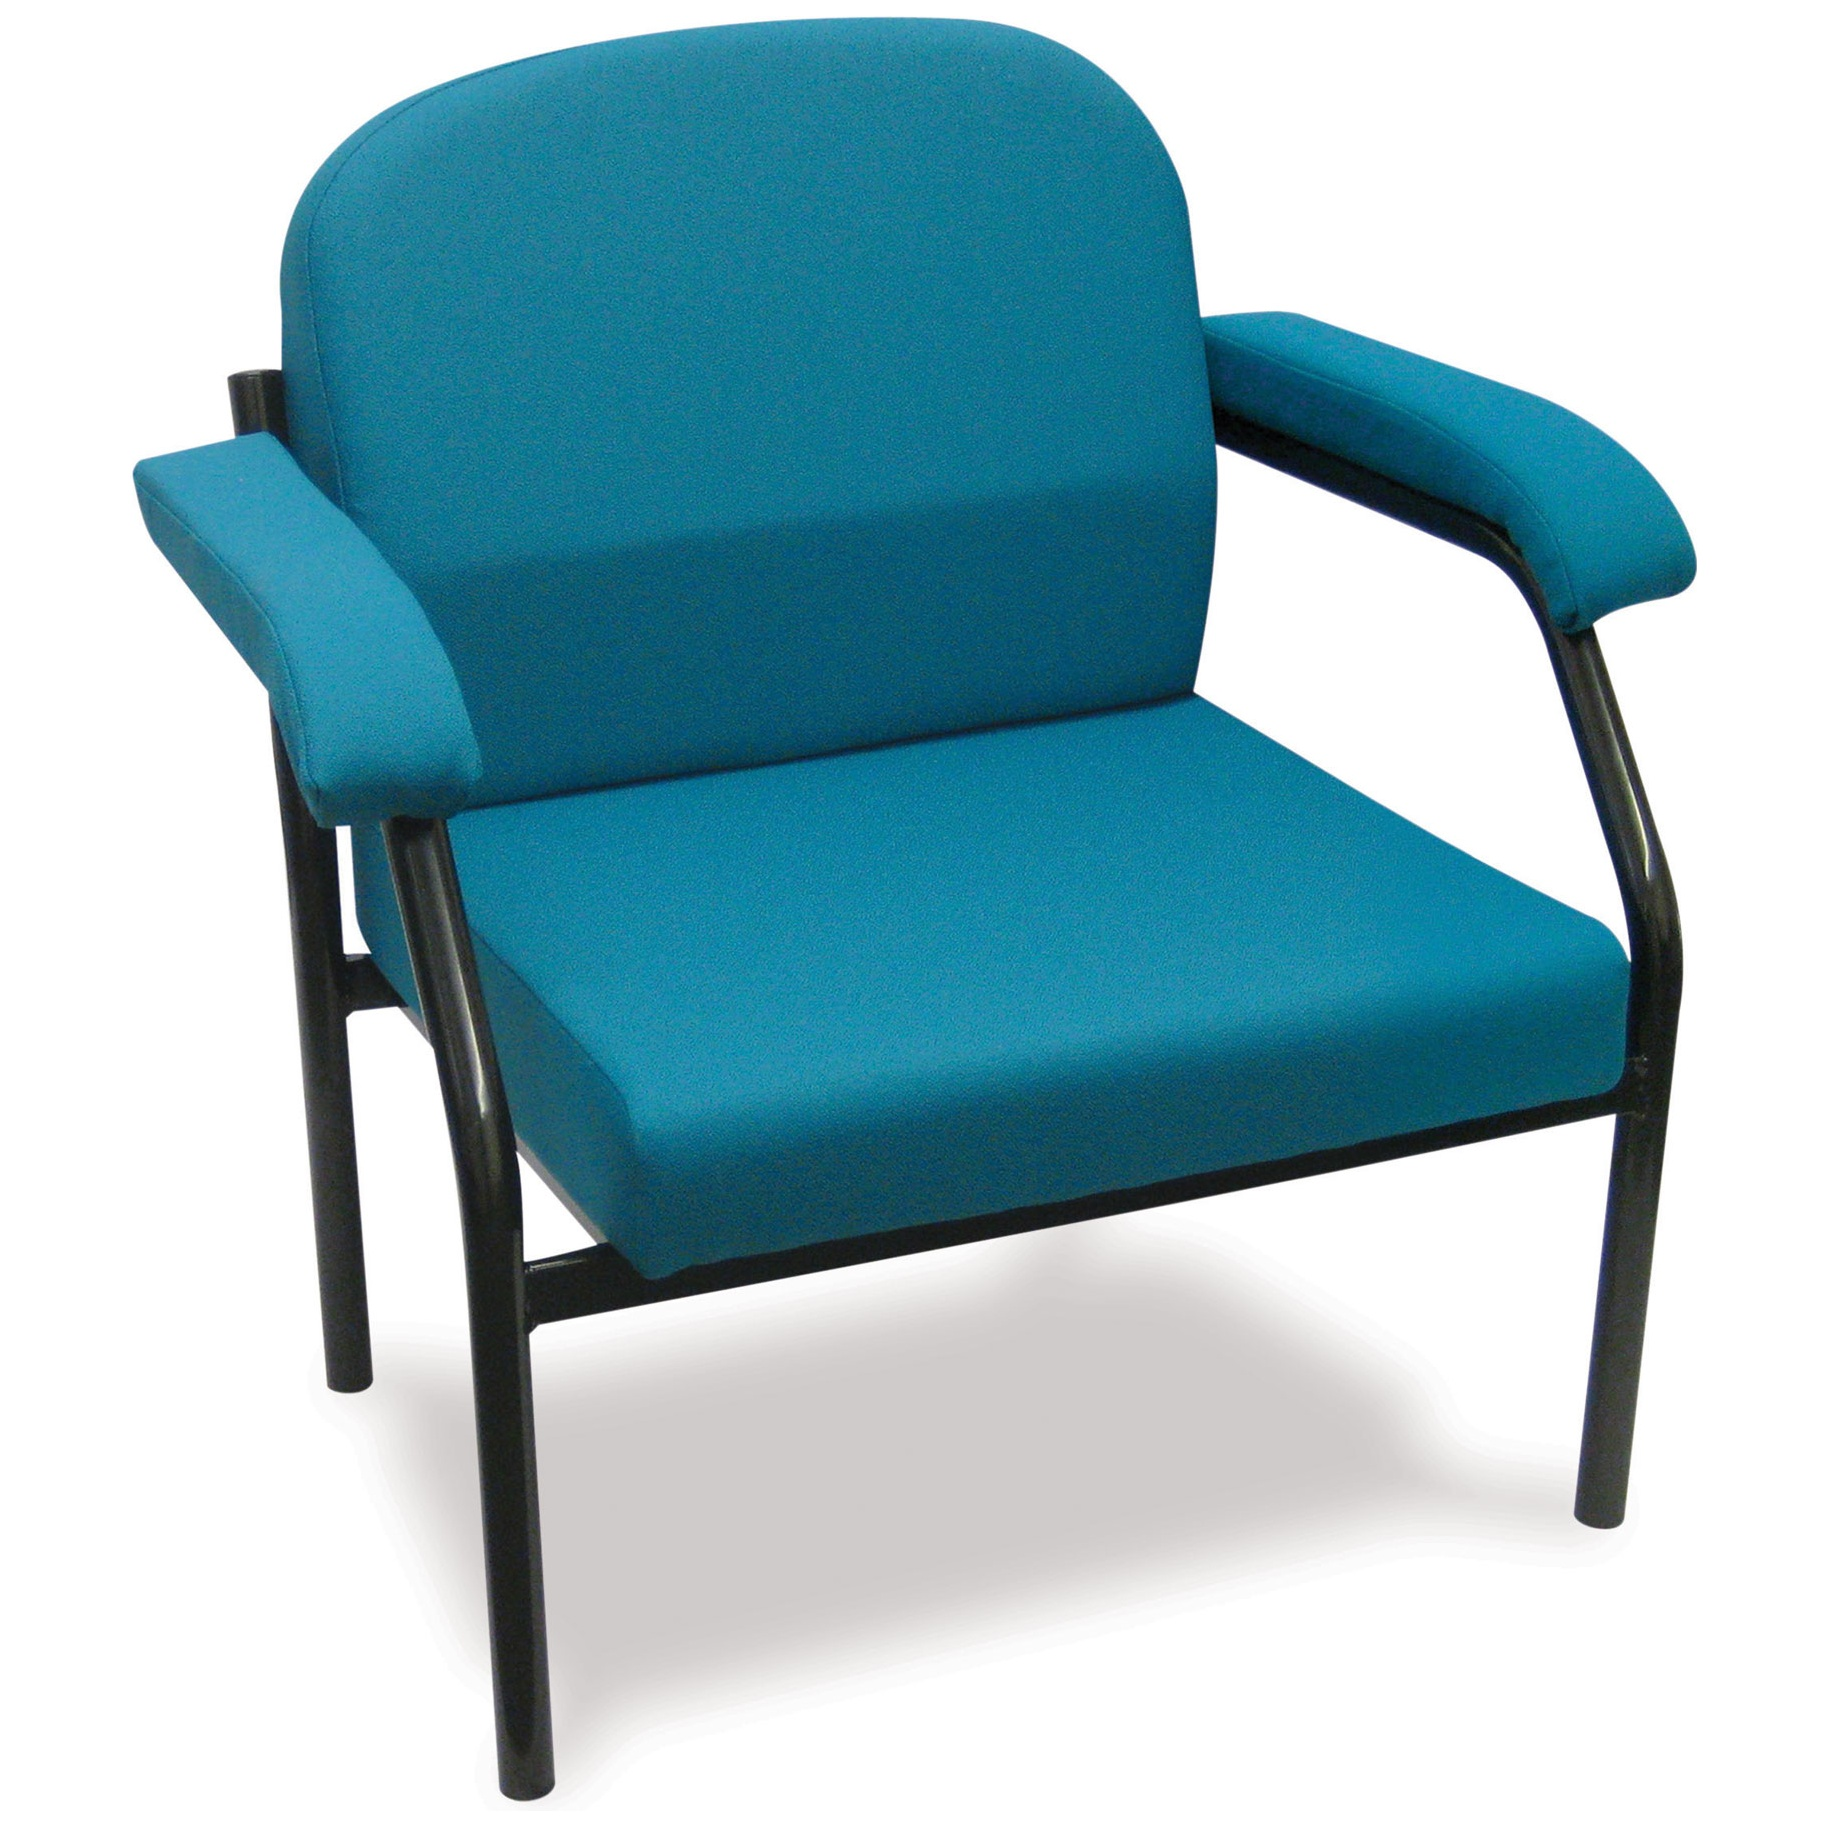 Easy Extra Heavy Duty Reception Armchair | Reception Seating